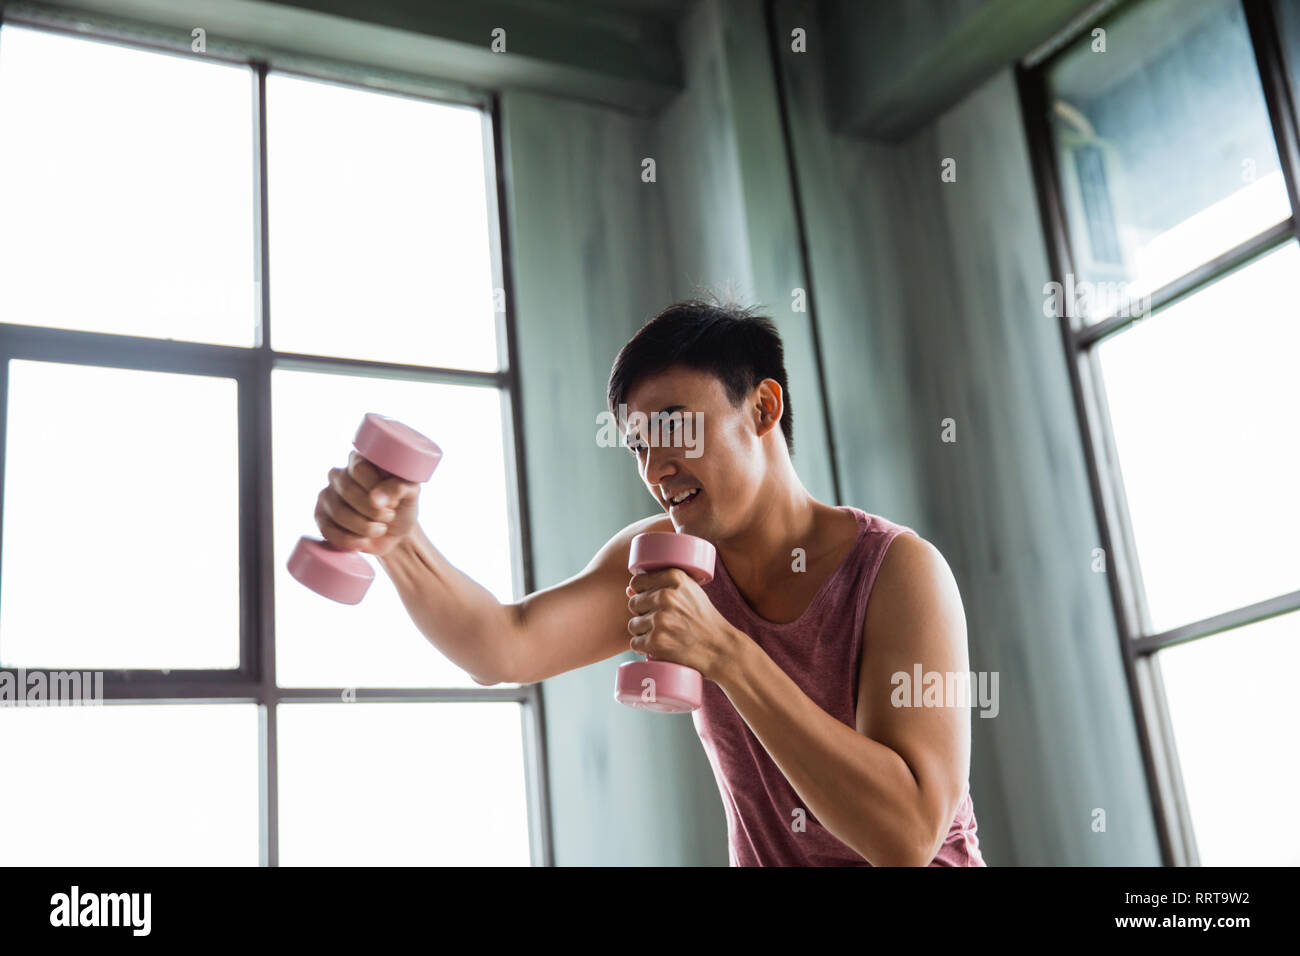 man using dumbbell doing some boxing exercise - Stock Image